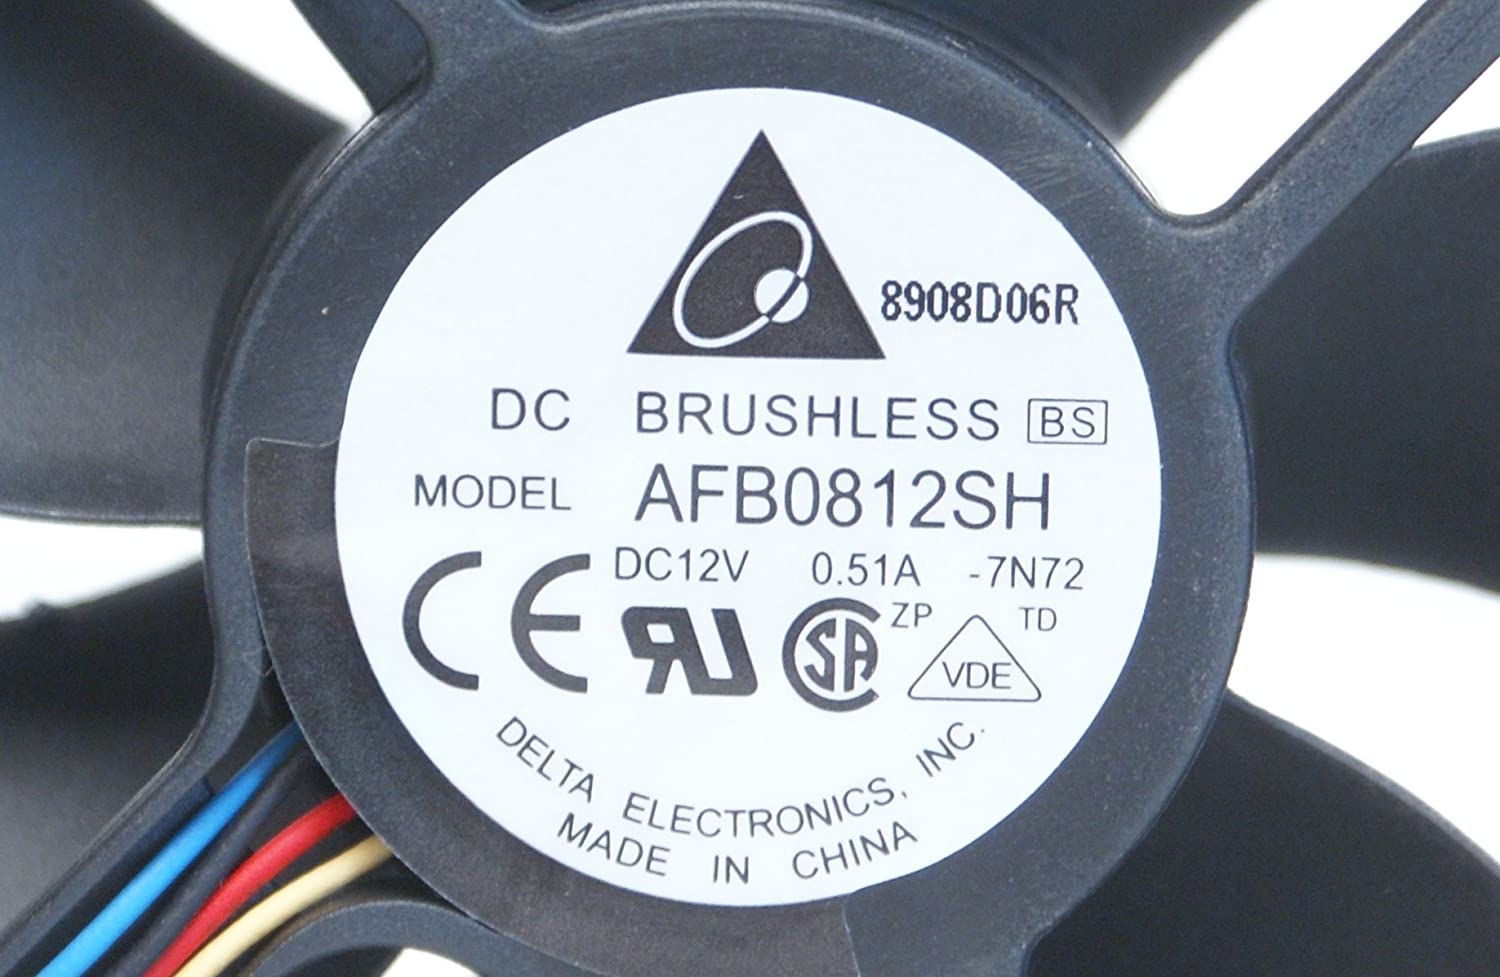 AFB0812SH Genuine OEM Original Delta Electronics DC Brushless AFB0812SH 4-Pin 80 x 25 x 80mm Computer Fan Compatible Model Numbers